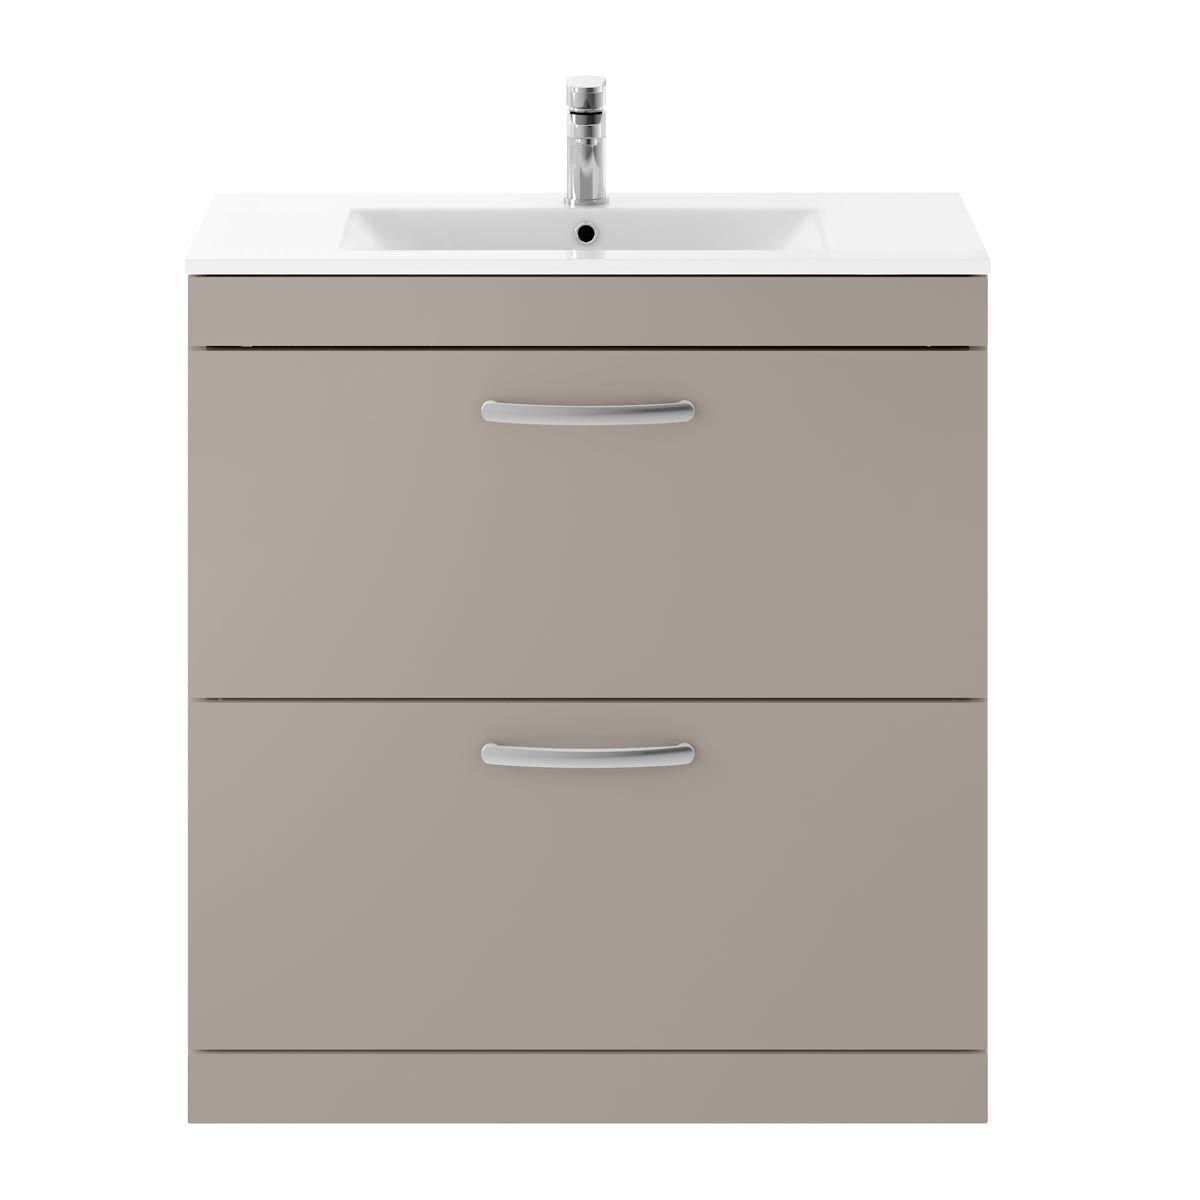 Nuie Athena Stone Grey 2 Drawer Floor Standing Vanity Unit with 18mm Profile Basin 800mm